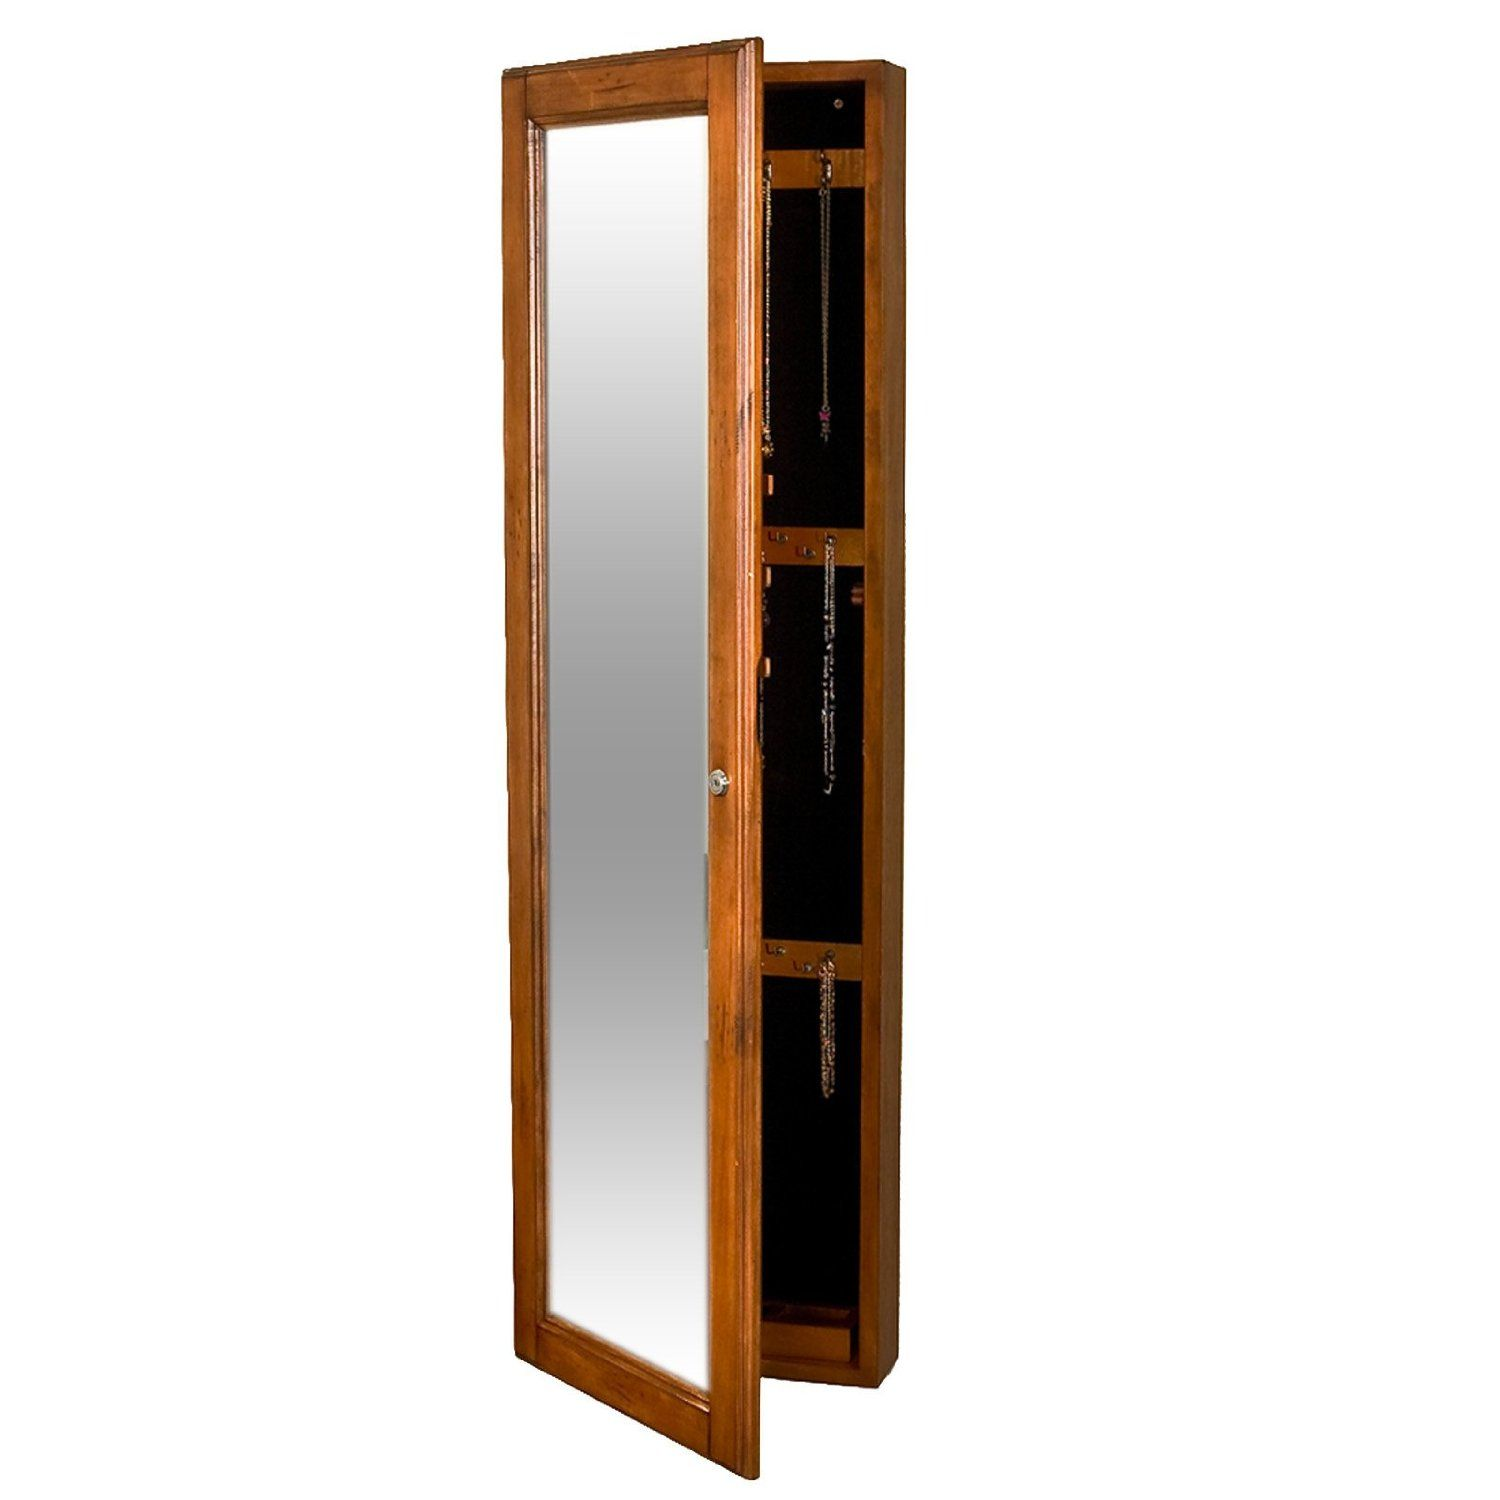 Amazon Com Sei Wall Mount Jewelry Armoire With Mirror Oak Home Kitchen Wall Mounted Jewelry Armoire Jewelry Mirror Hanging Wall Mirror